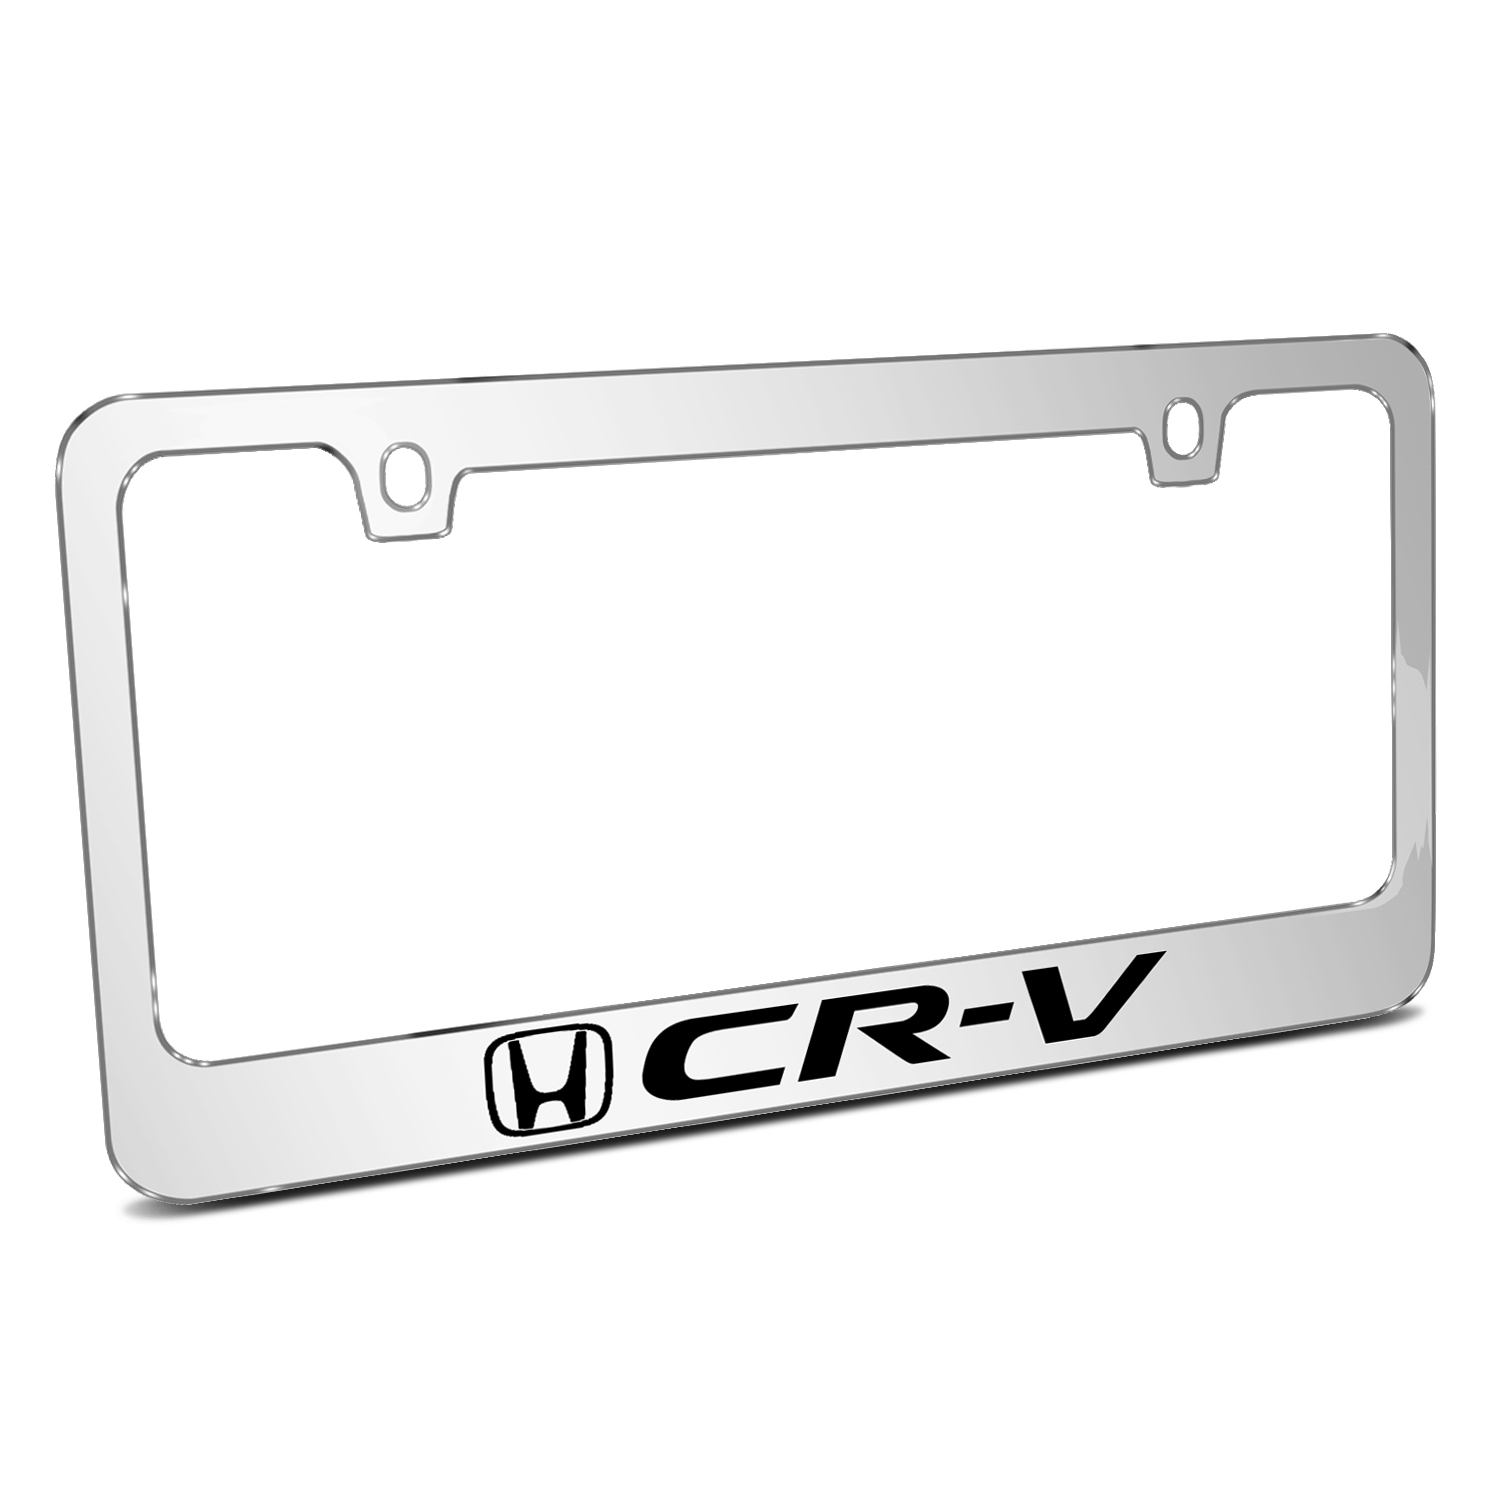 Honda HR-V Mirror Chrome Metal License Plate Frame